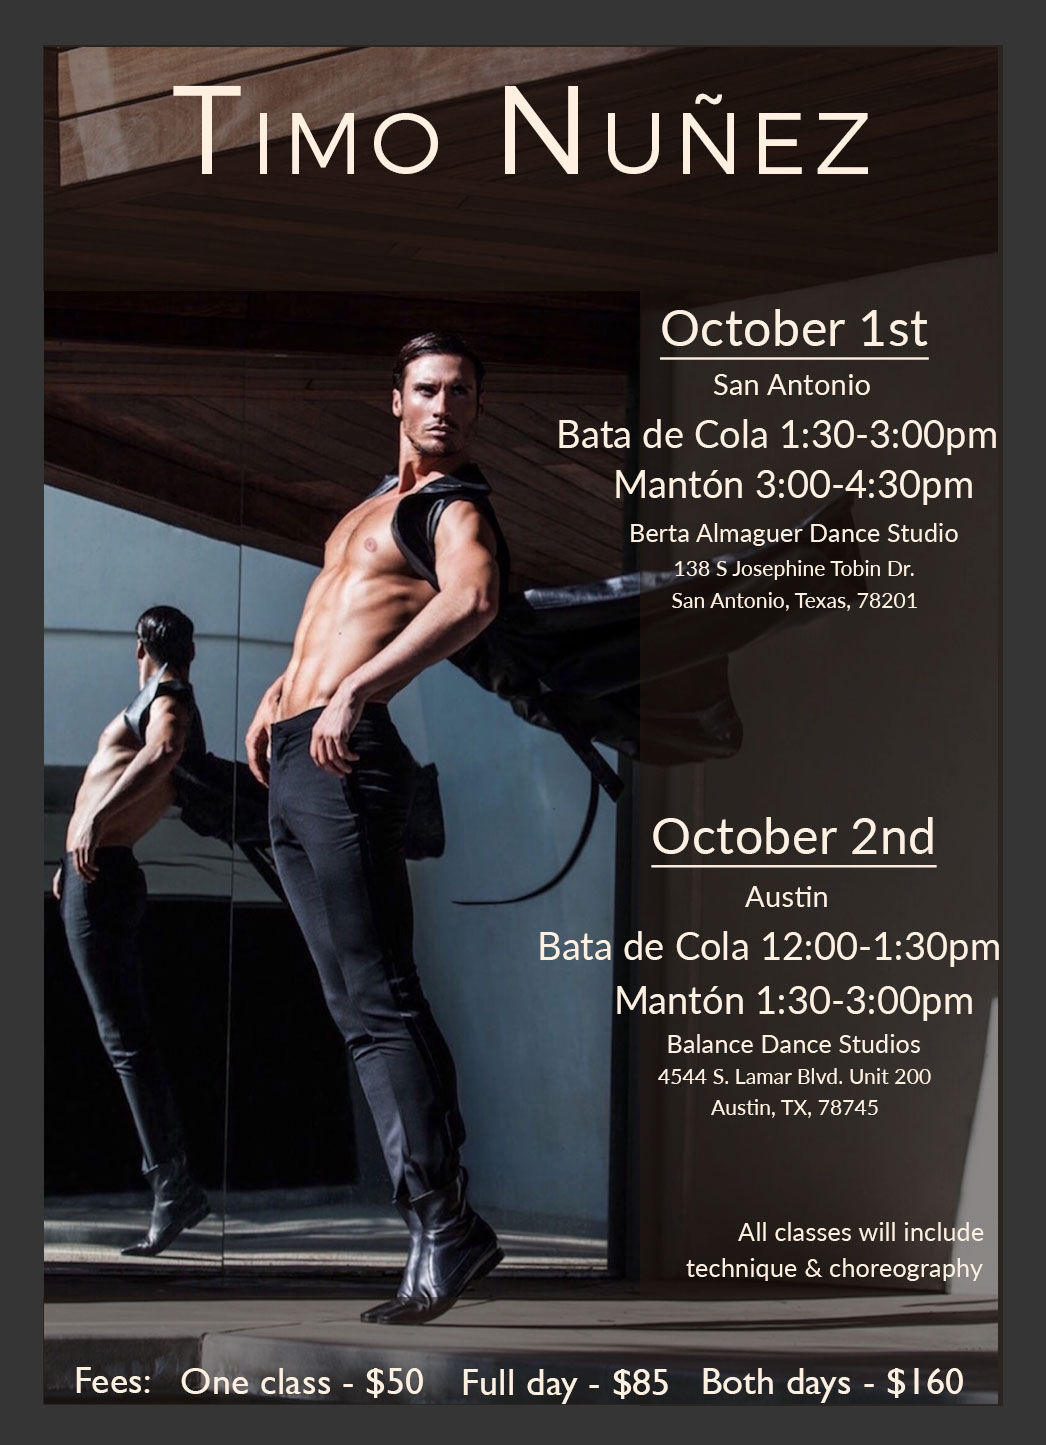 Exclusive Workshops with Timo Nuñez organized by the Austin Flamenco Academy